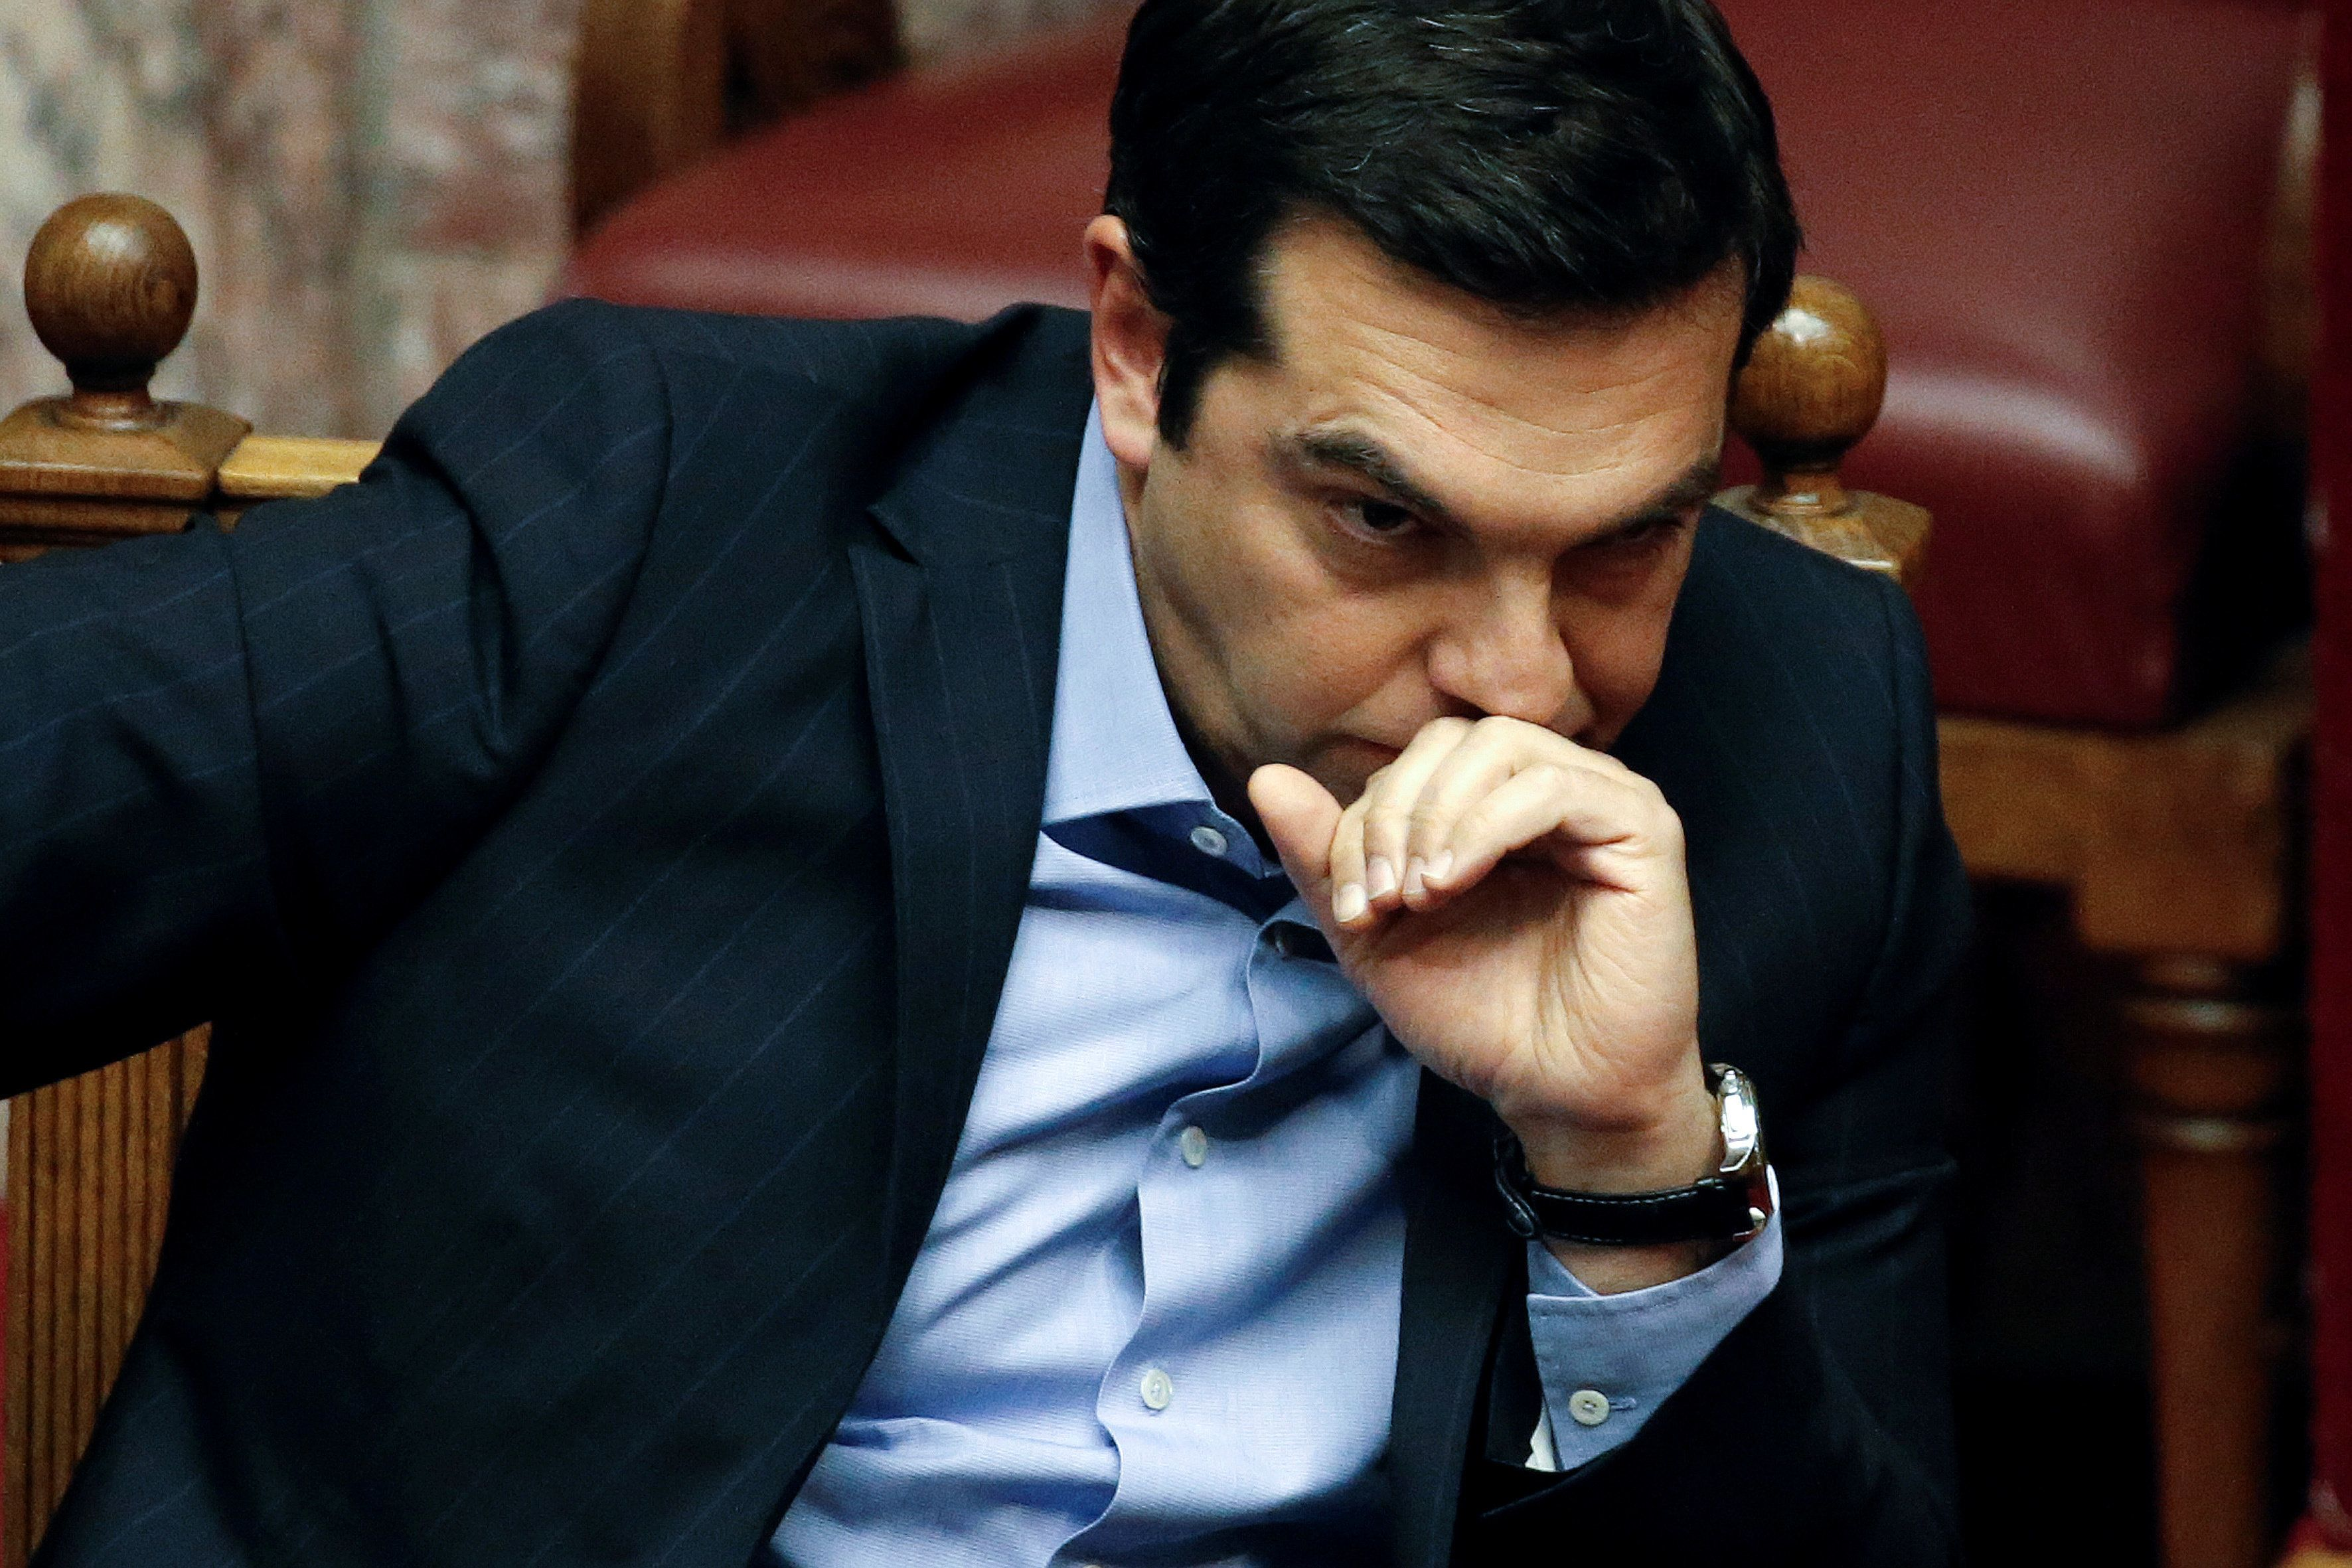 Prime Minister Alexis Tsipras' governmentwas re-elected in September on promises to ease the pain...